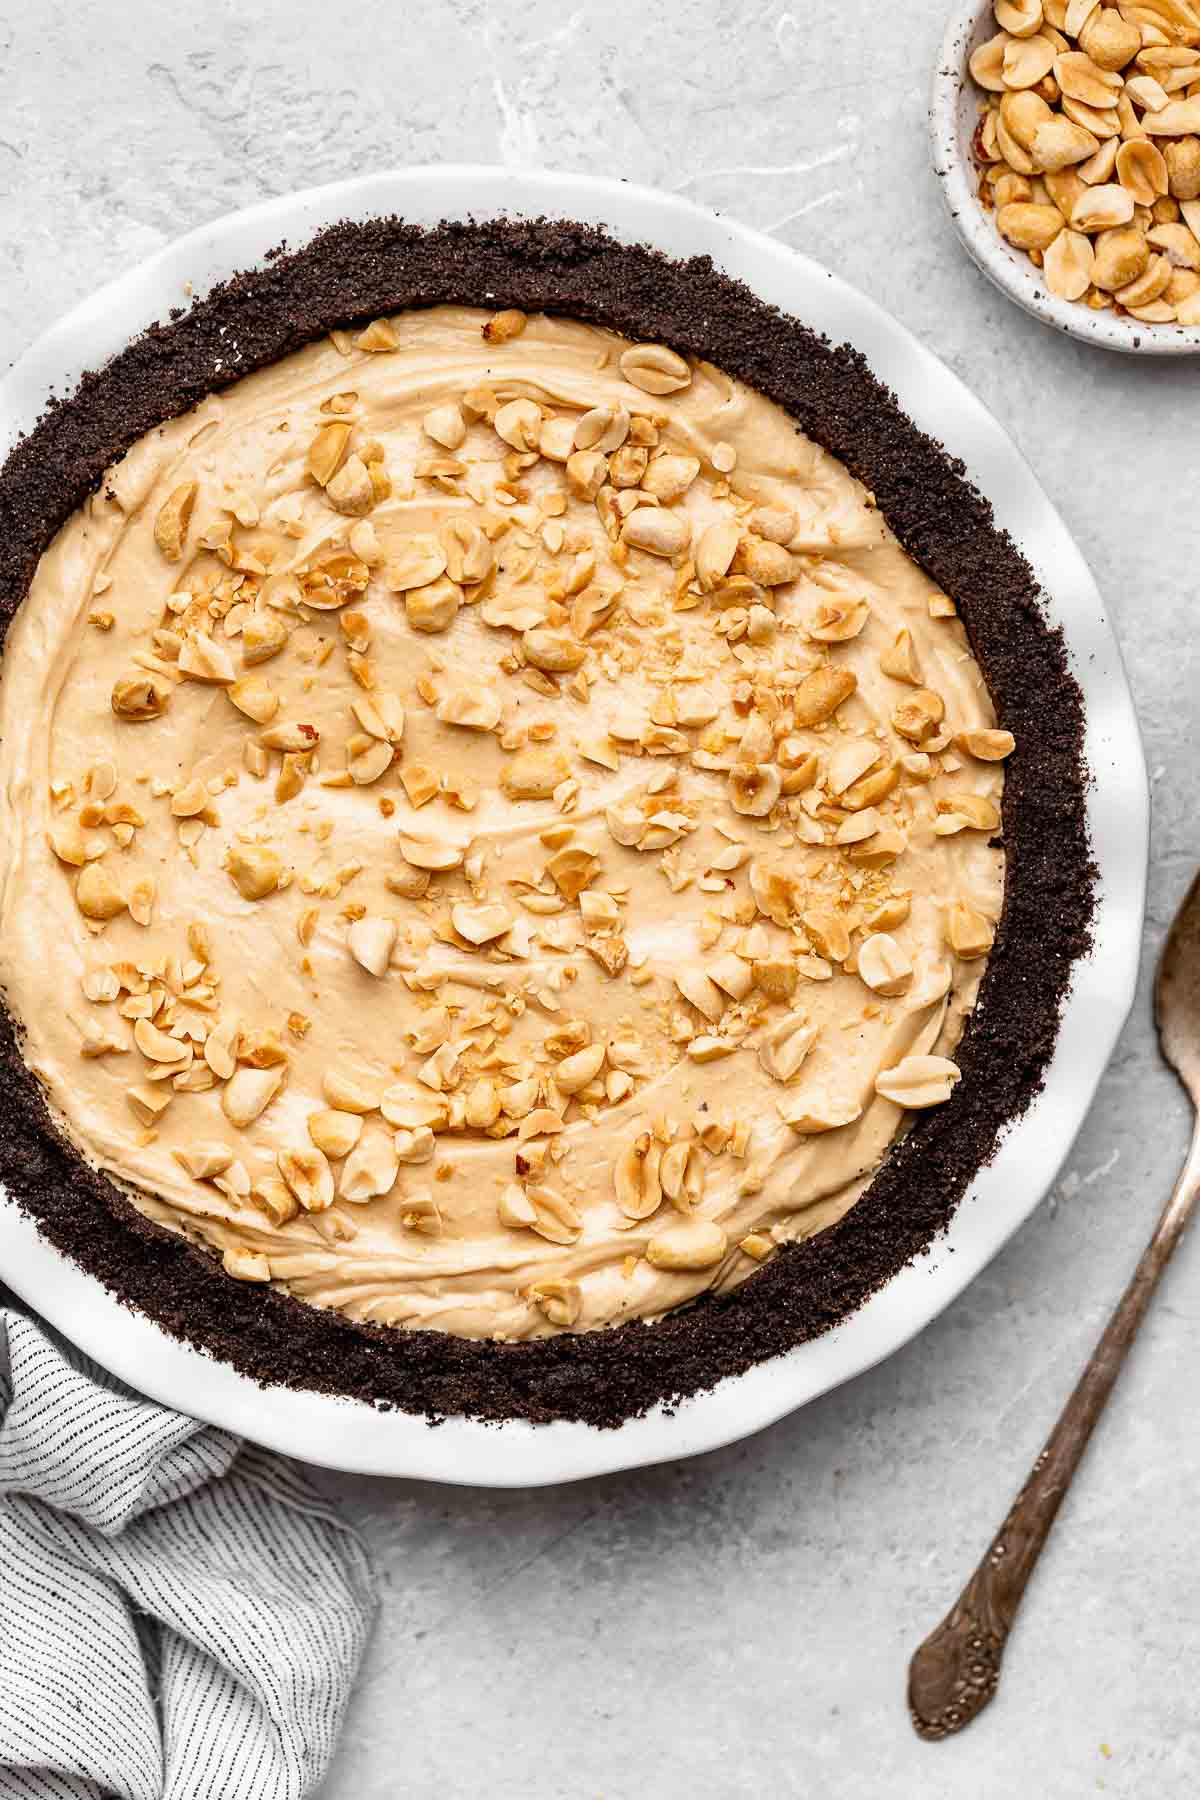 Oreo Peanut Butter Whip Pie in pie dish with chopped peanuts on top